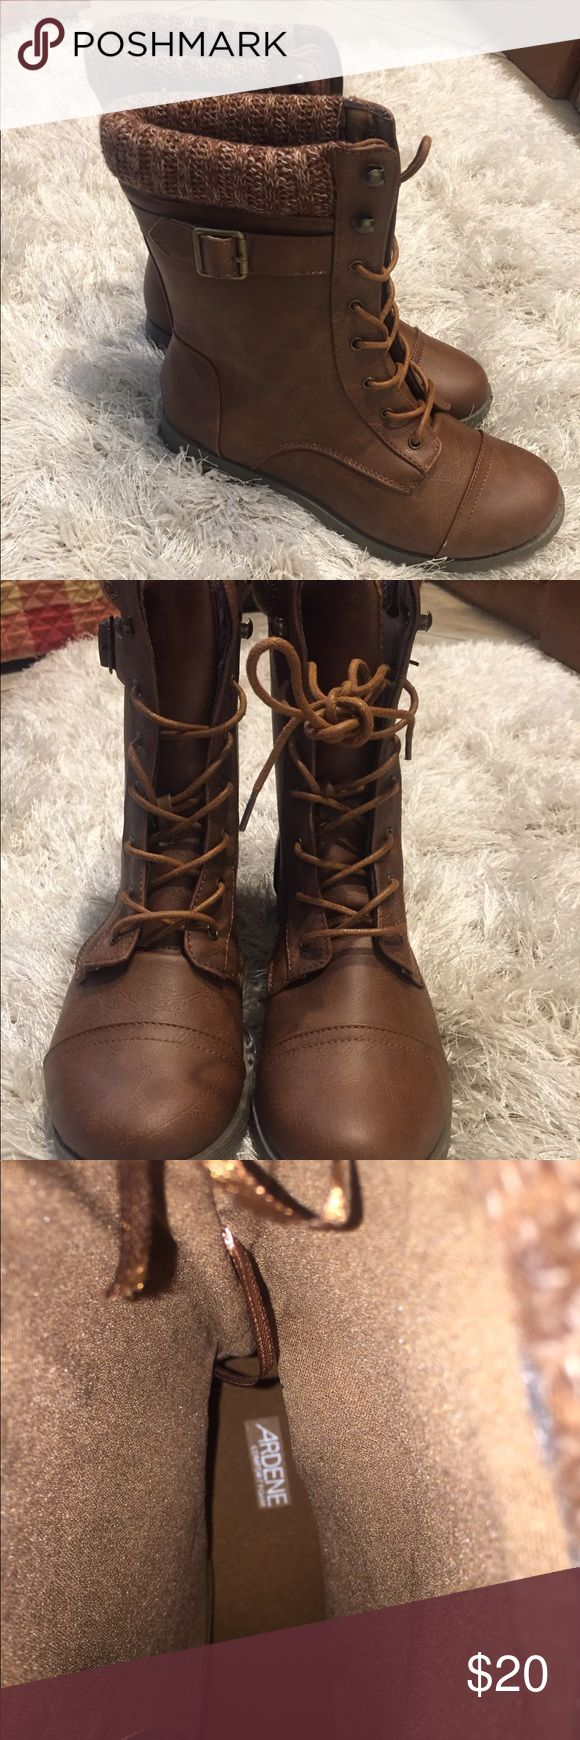 Ardene laced combat boots BRAND NEW. NEVER WORN.  Mid-calf faux leather boots. Laced upper. Comfort foam insole. Track sole. Knit border. Ardene Shoes Combat & Moto Boots